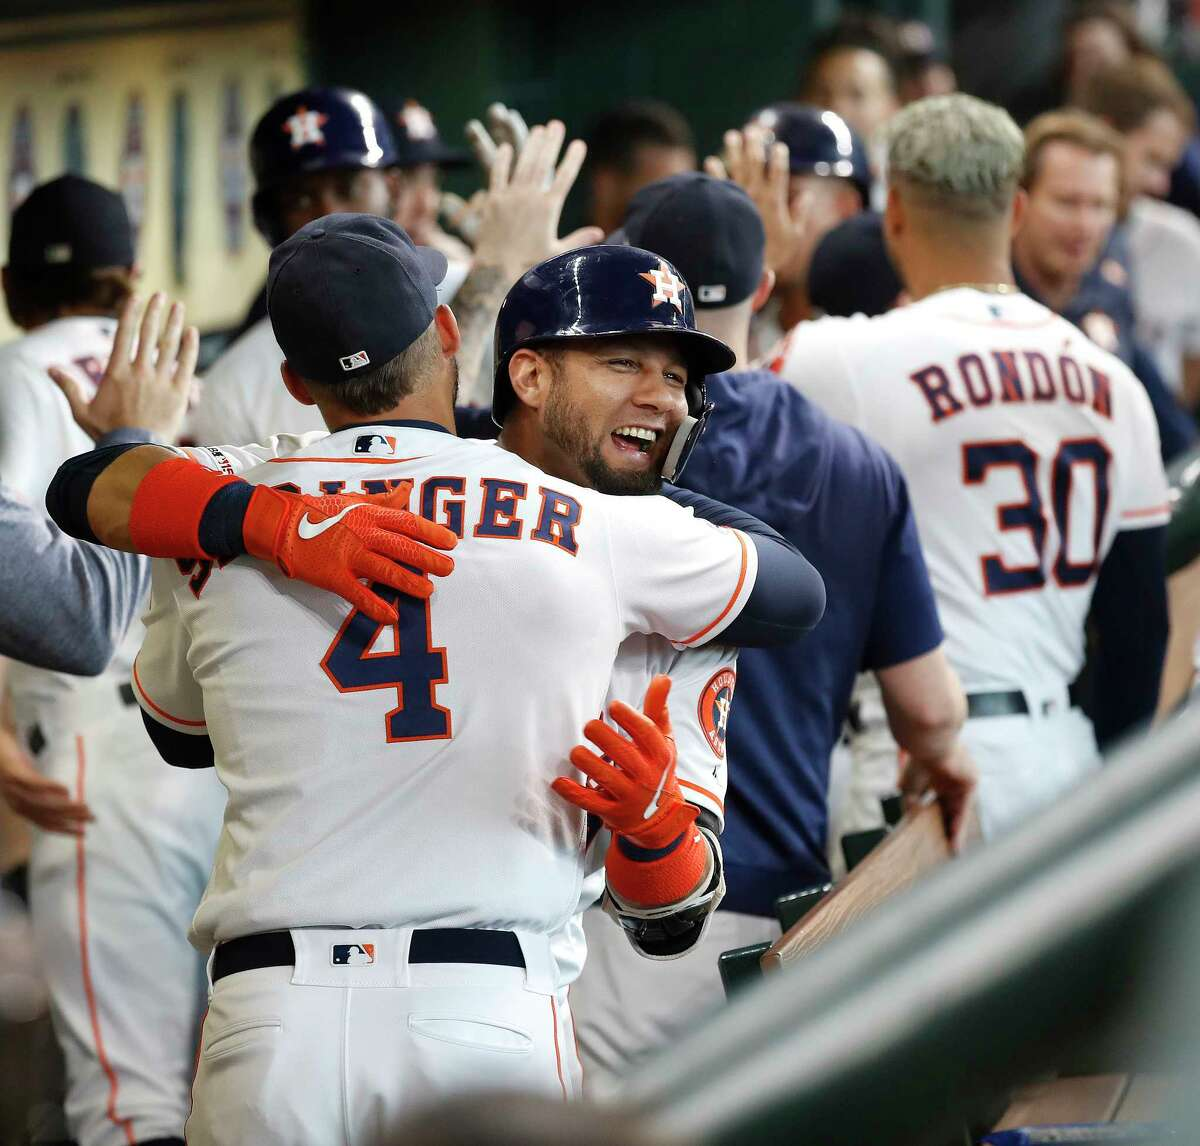 Houston Astros Yuli Gurriel (10) celebrates with George Springer (4) after hitting a three-run home run off of Colorado Rockies starting pitcher Peter Lambert during the first inning of an MLB baseball game at Minute Maid Park, Wednesday, August 7, 2019.